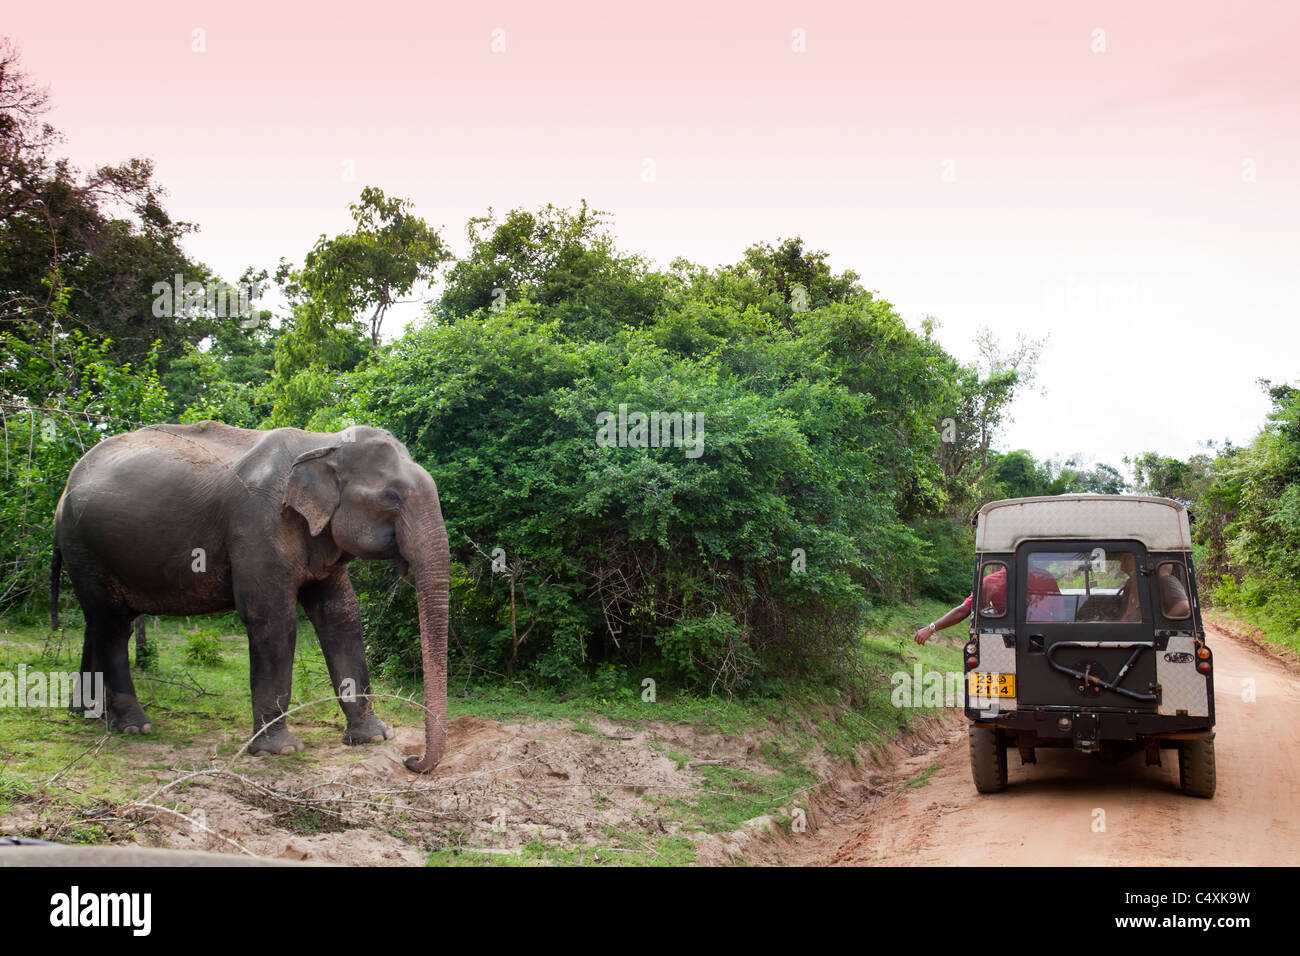 Wild Asian Elephant Elephas maximus à lécher minérales près de jungle Road en face de véhicule Photo Stock